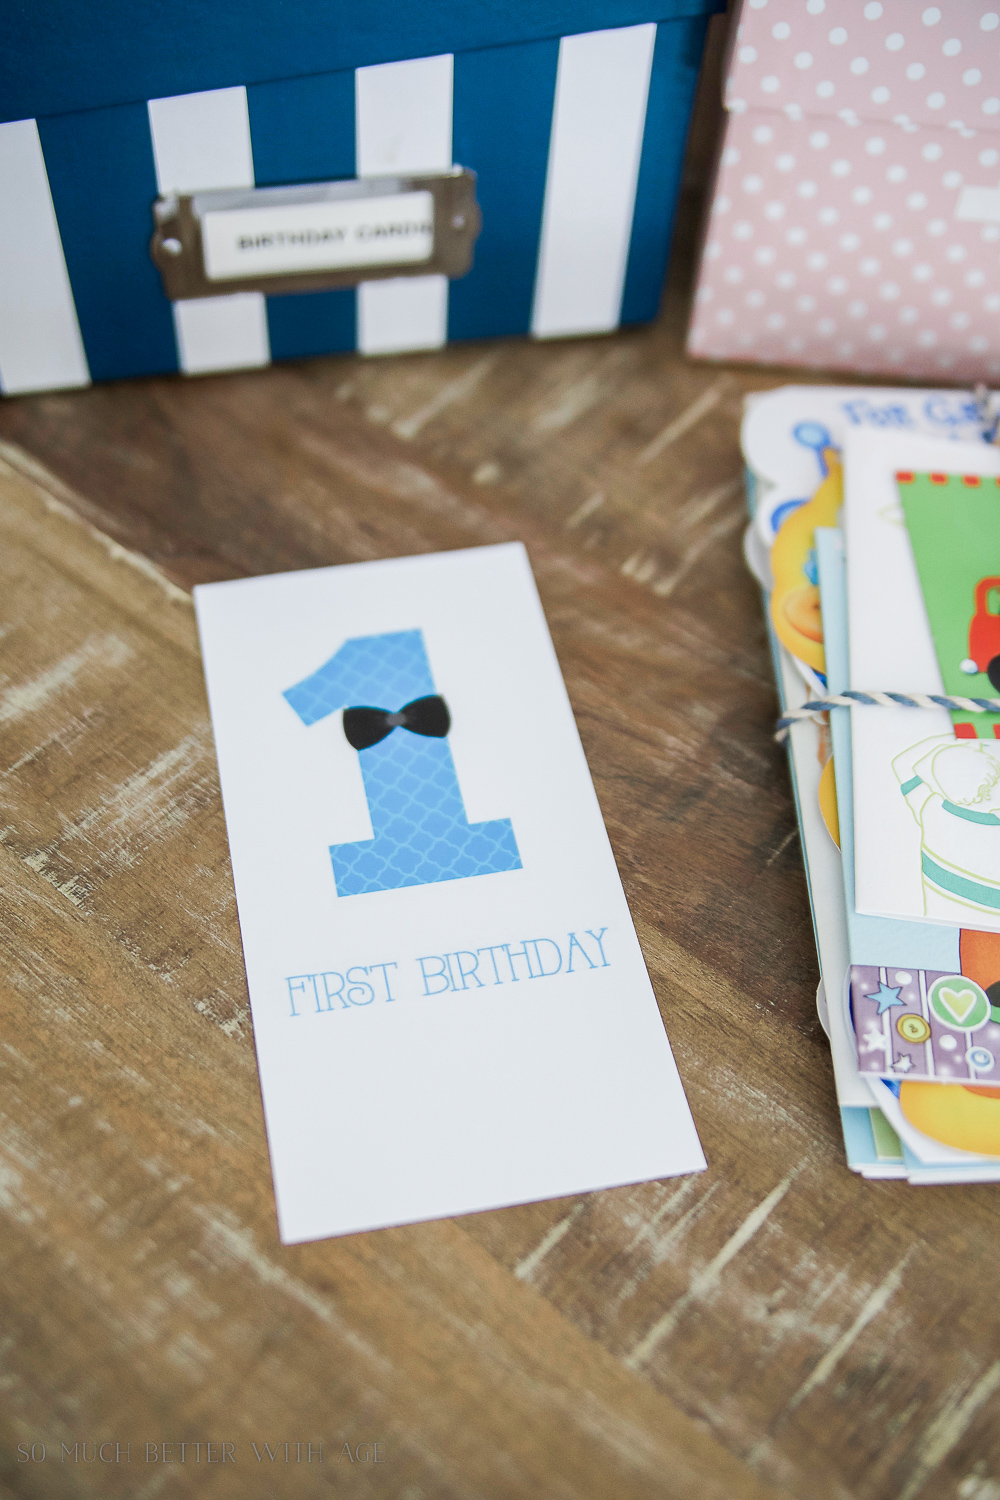 Organizing Kids Keepsakes (Birthday Cards) Printable/first birthday boy - So Much Better With Age